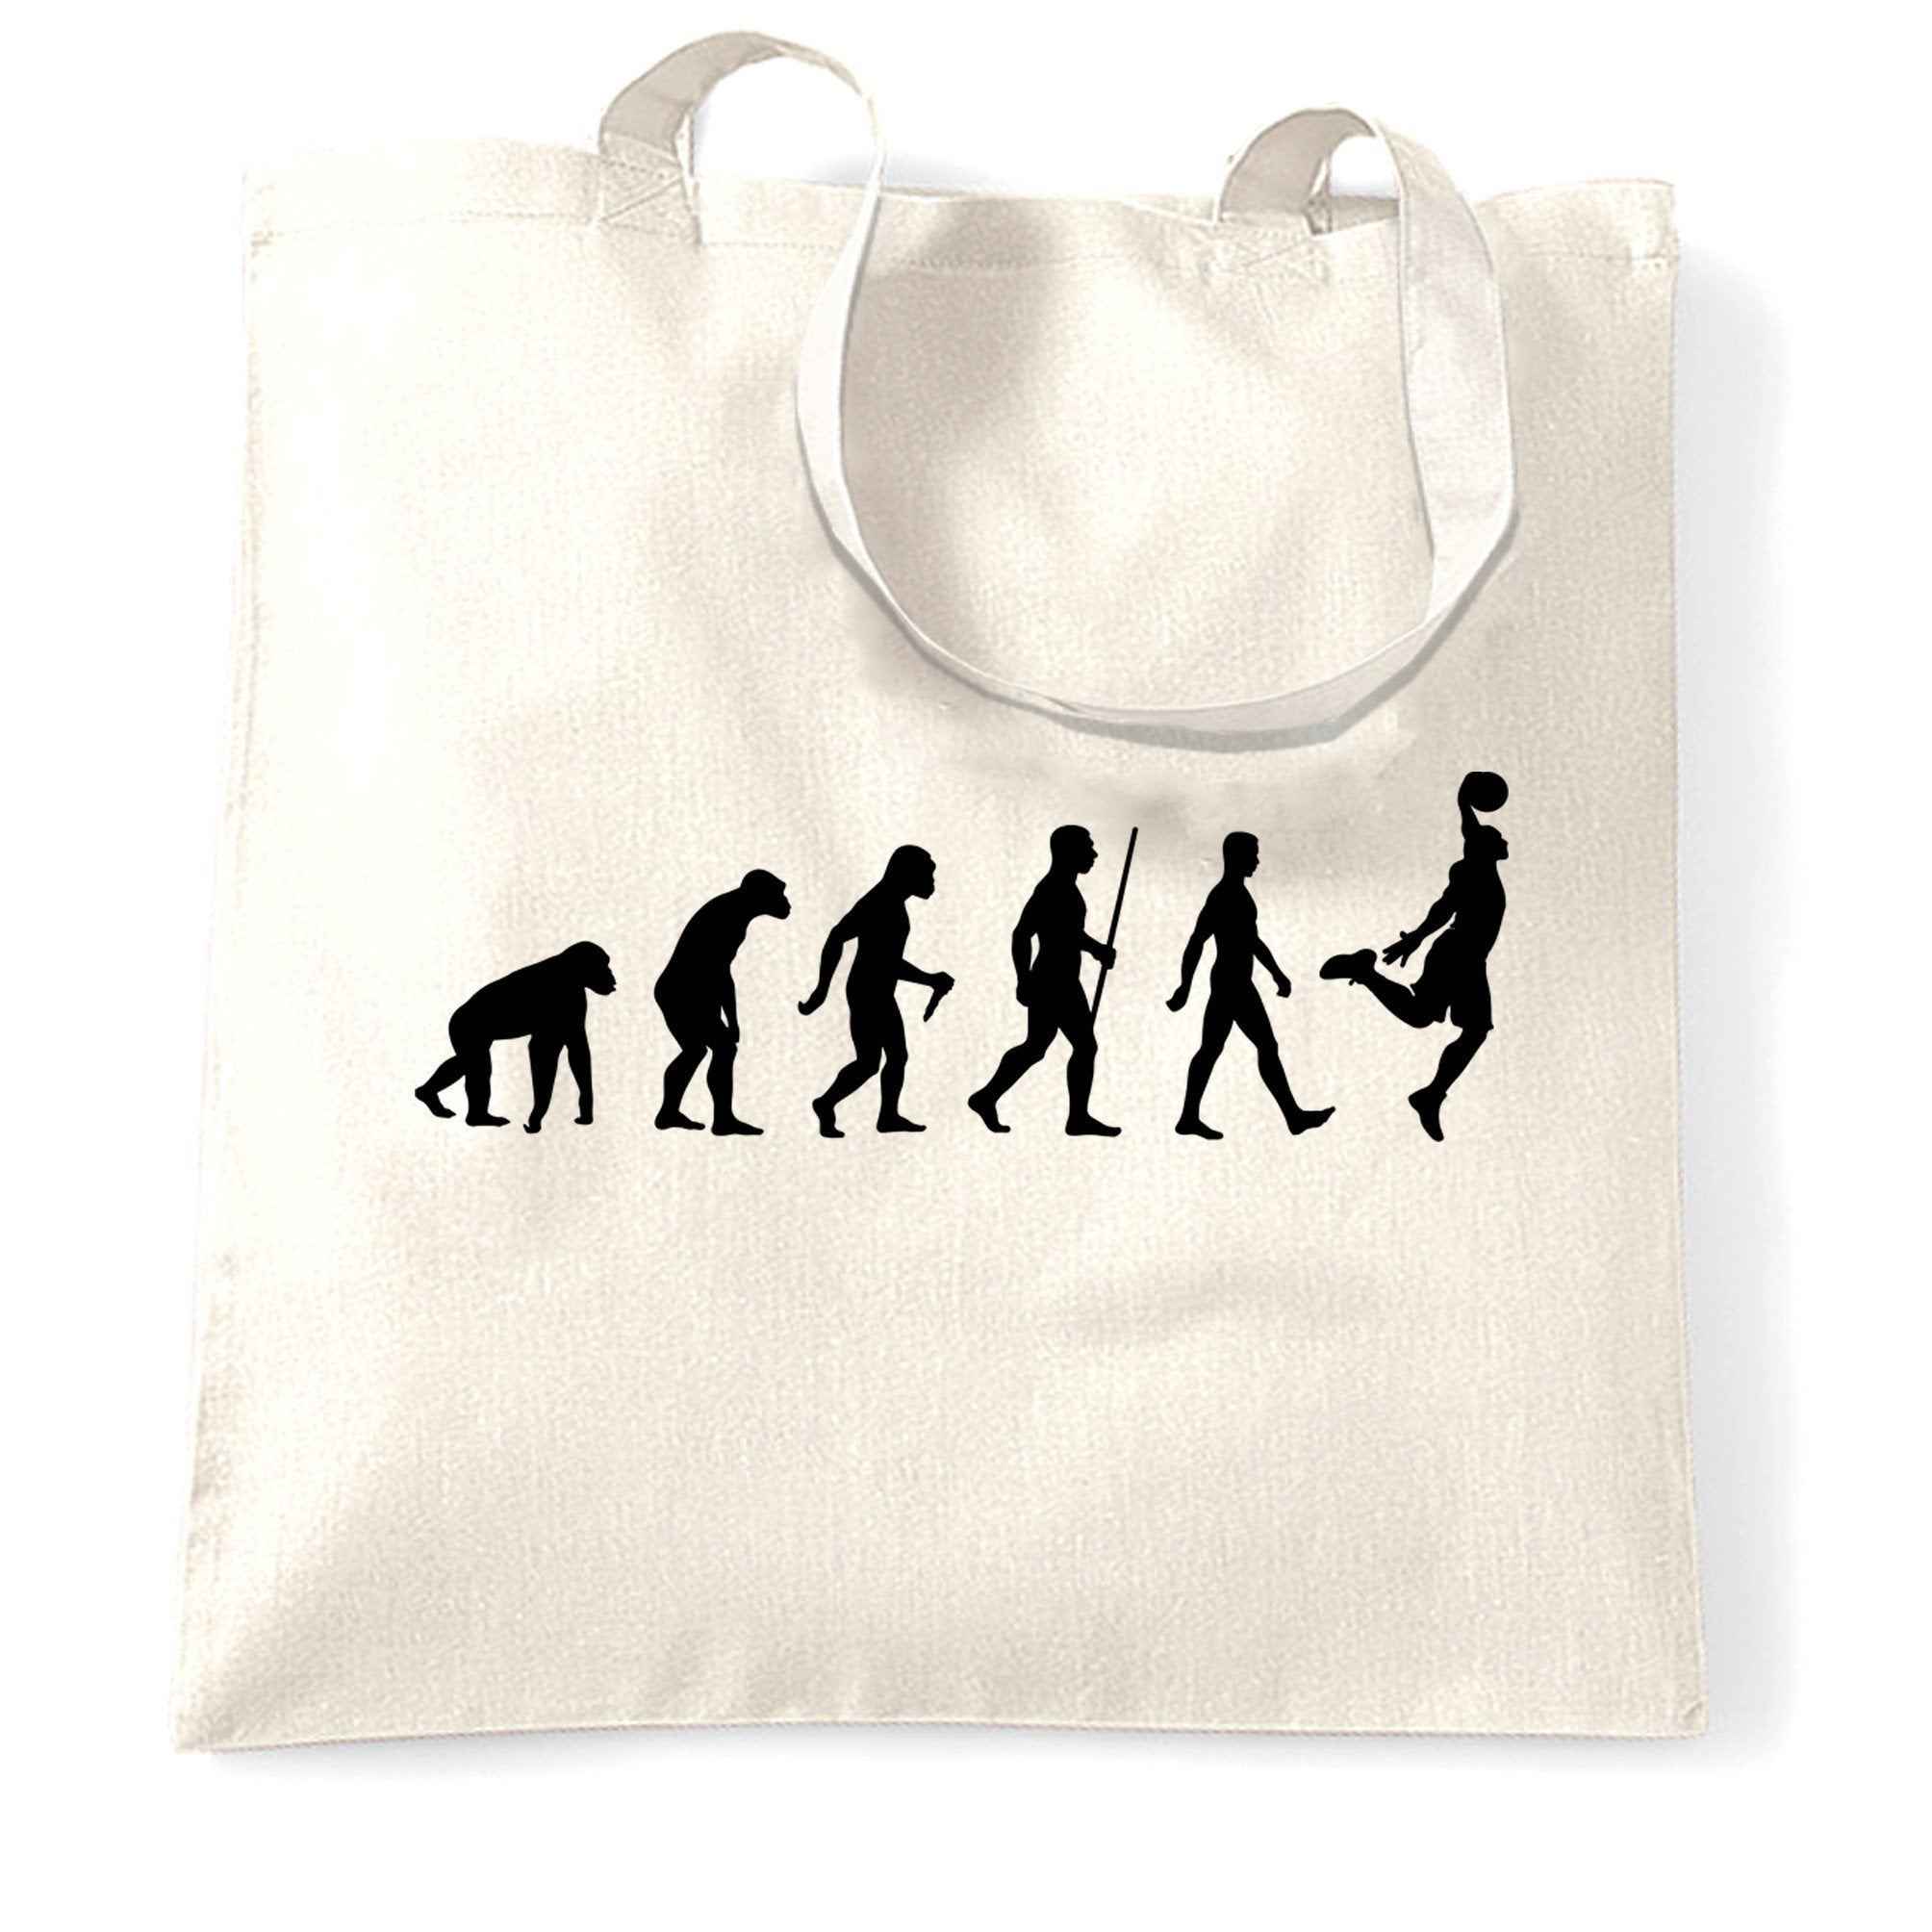 Sports Tote Bag Evolution Of A Basketball Player